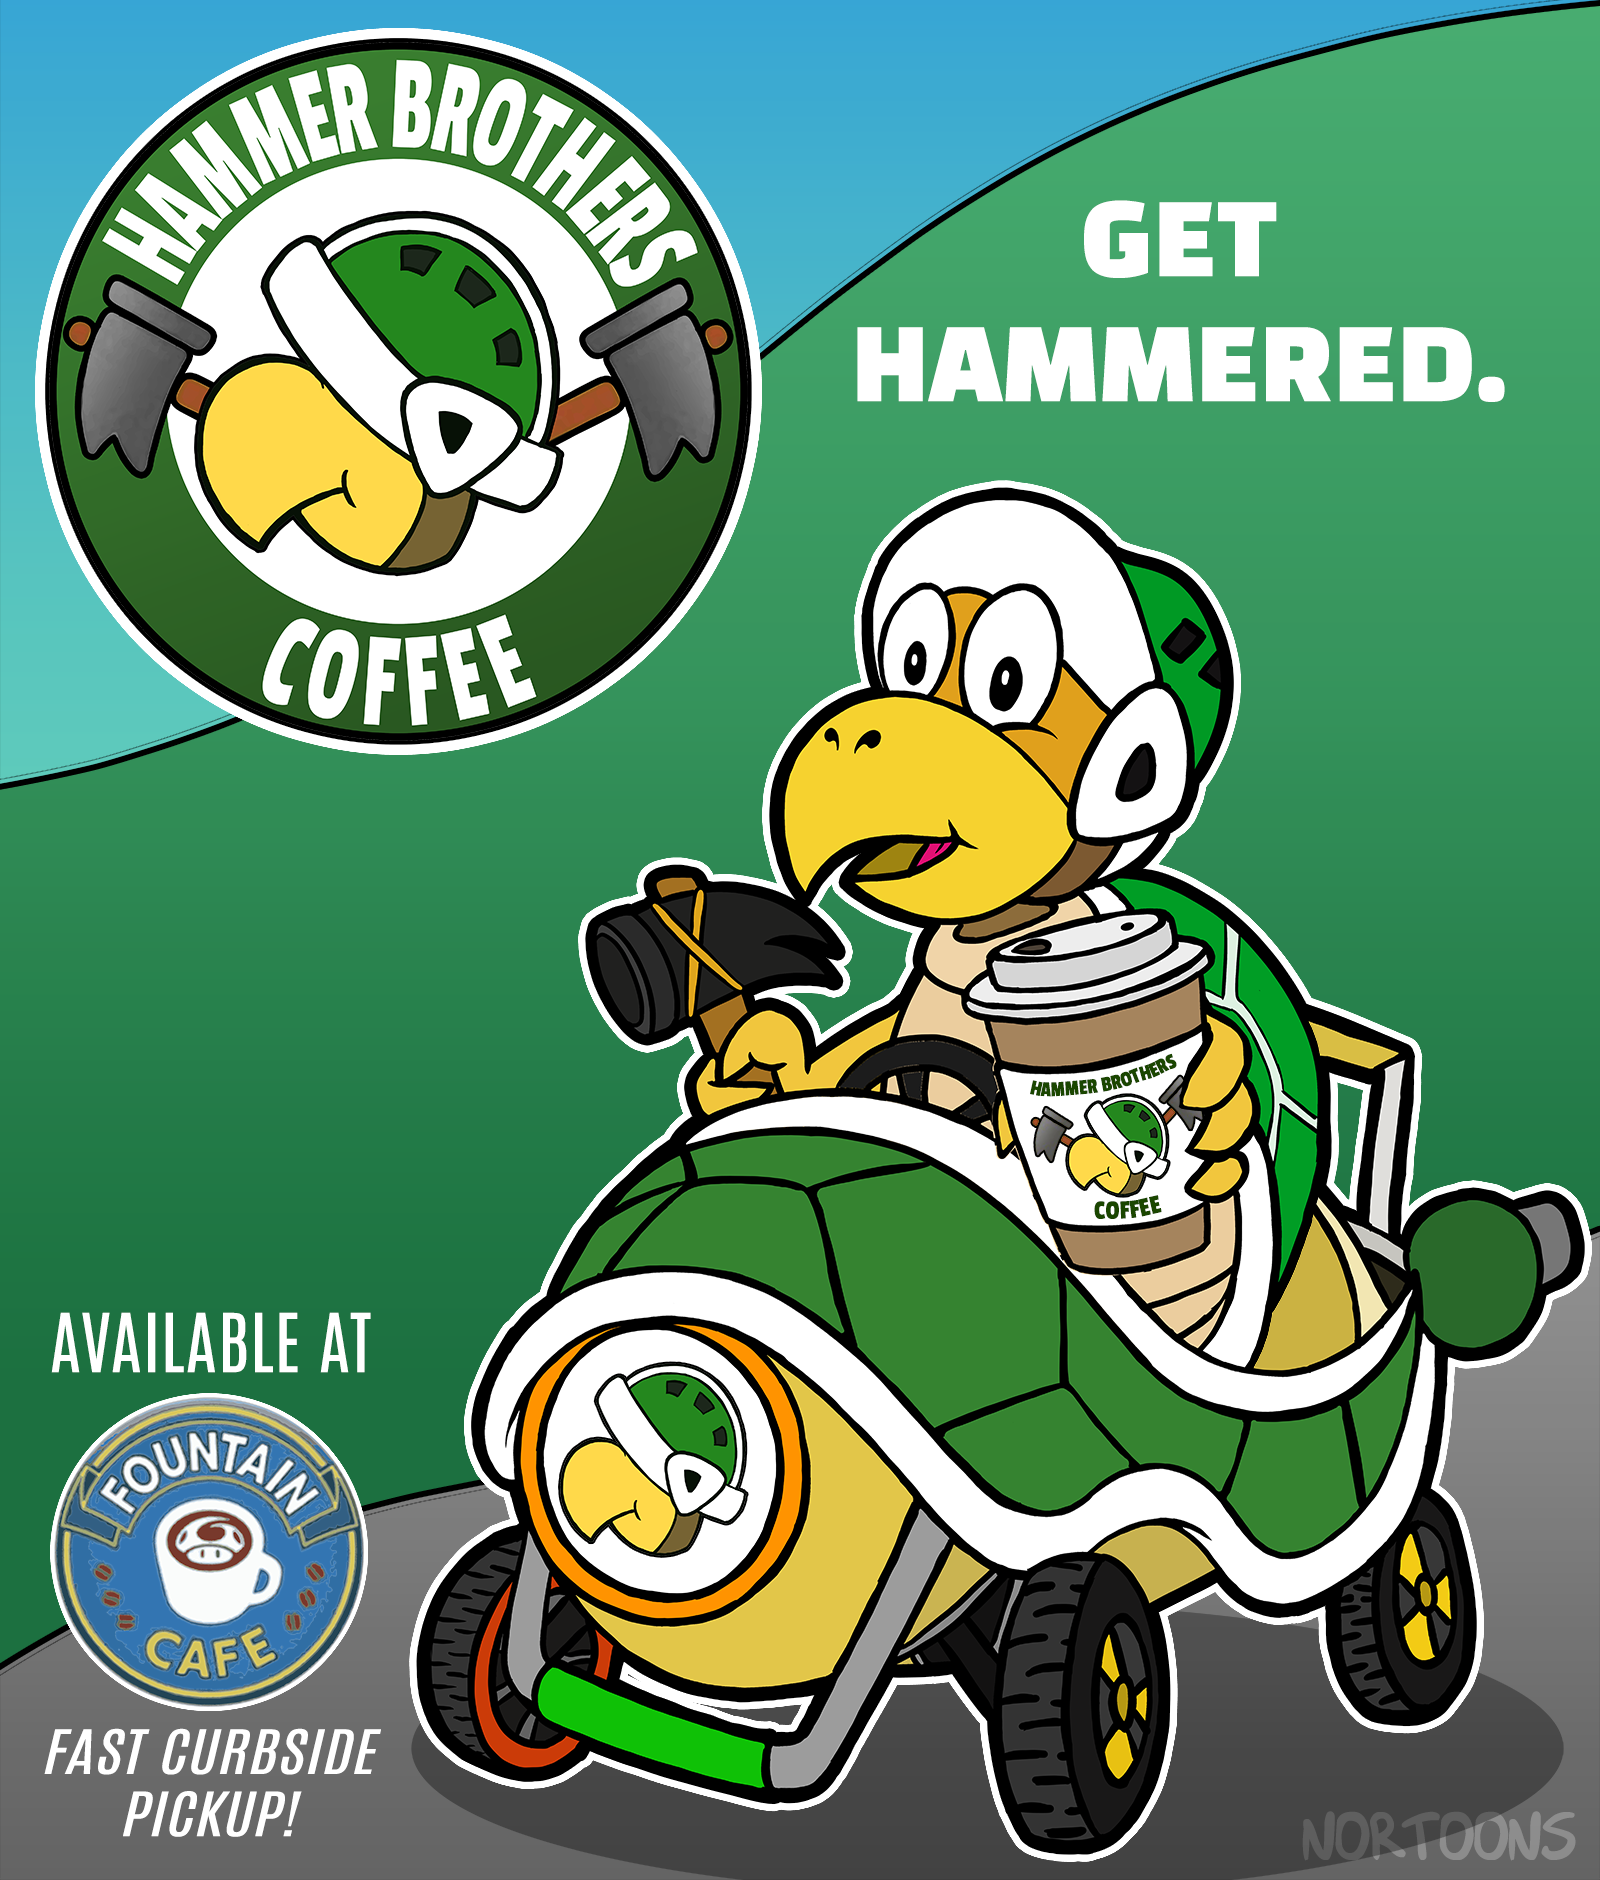 Hammer Brothers Coffee - Get Hammered